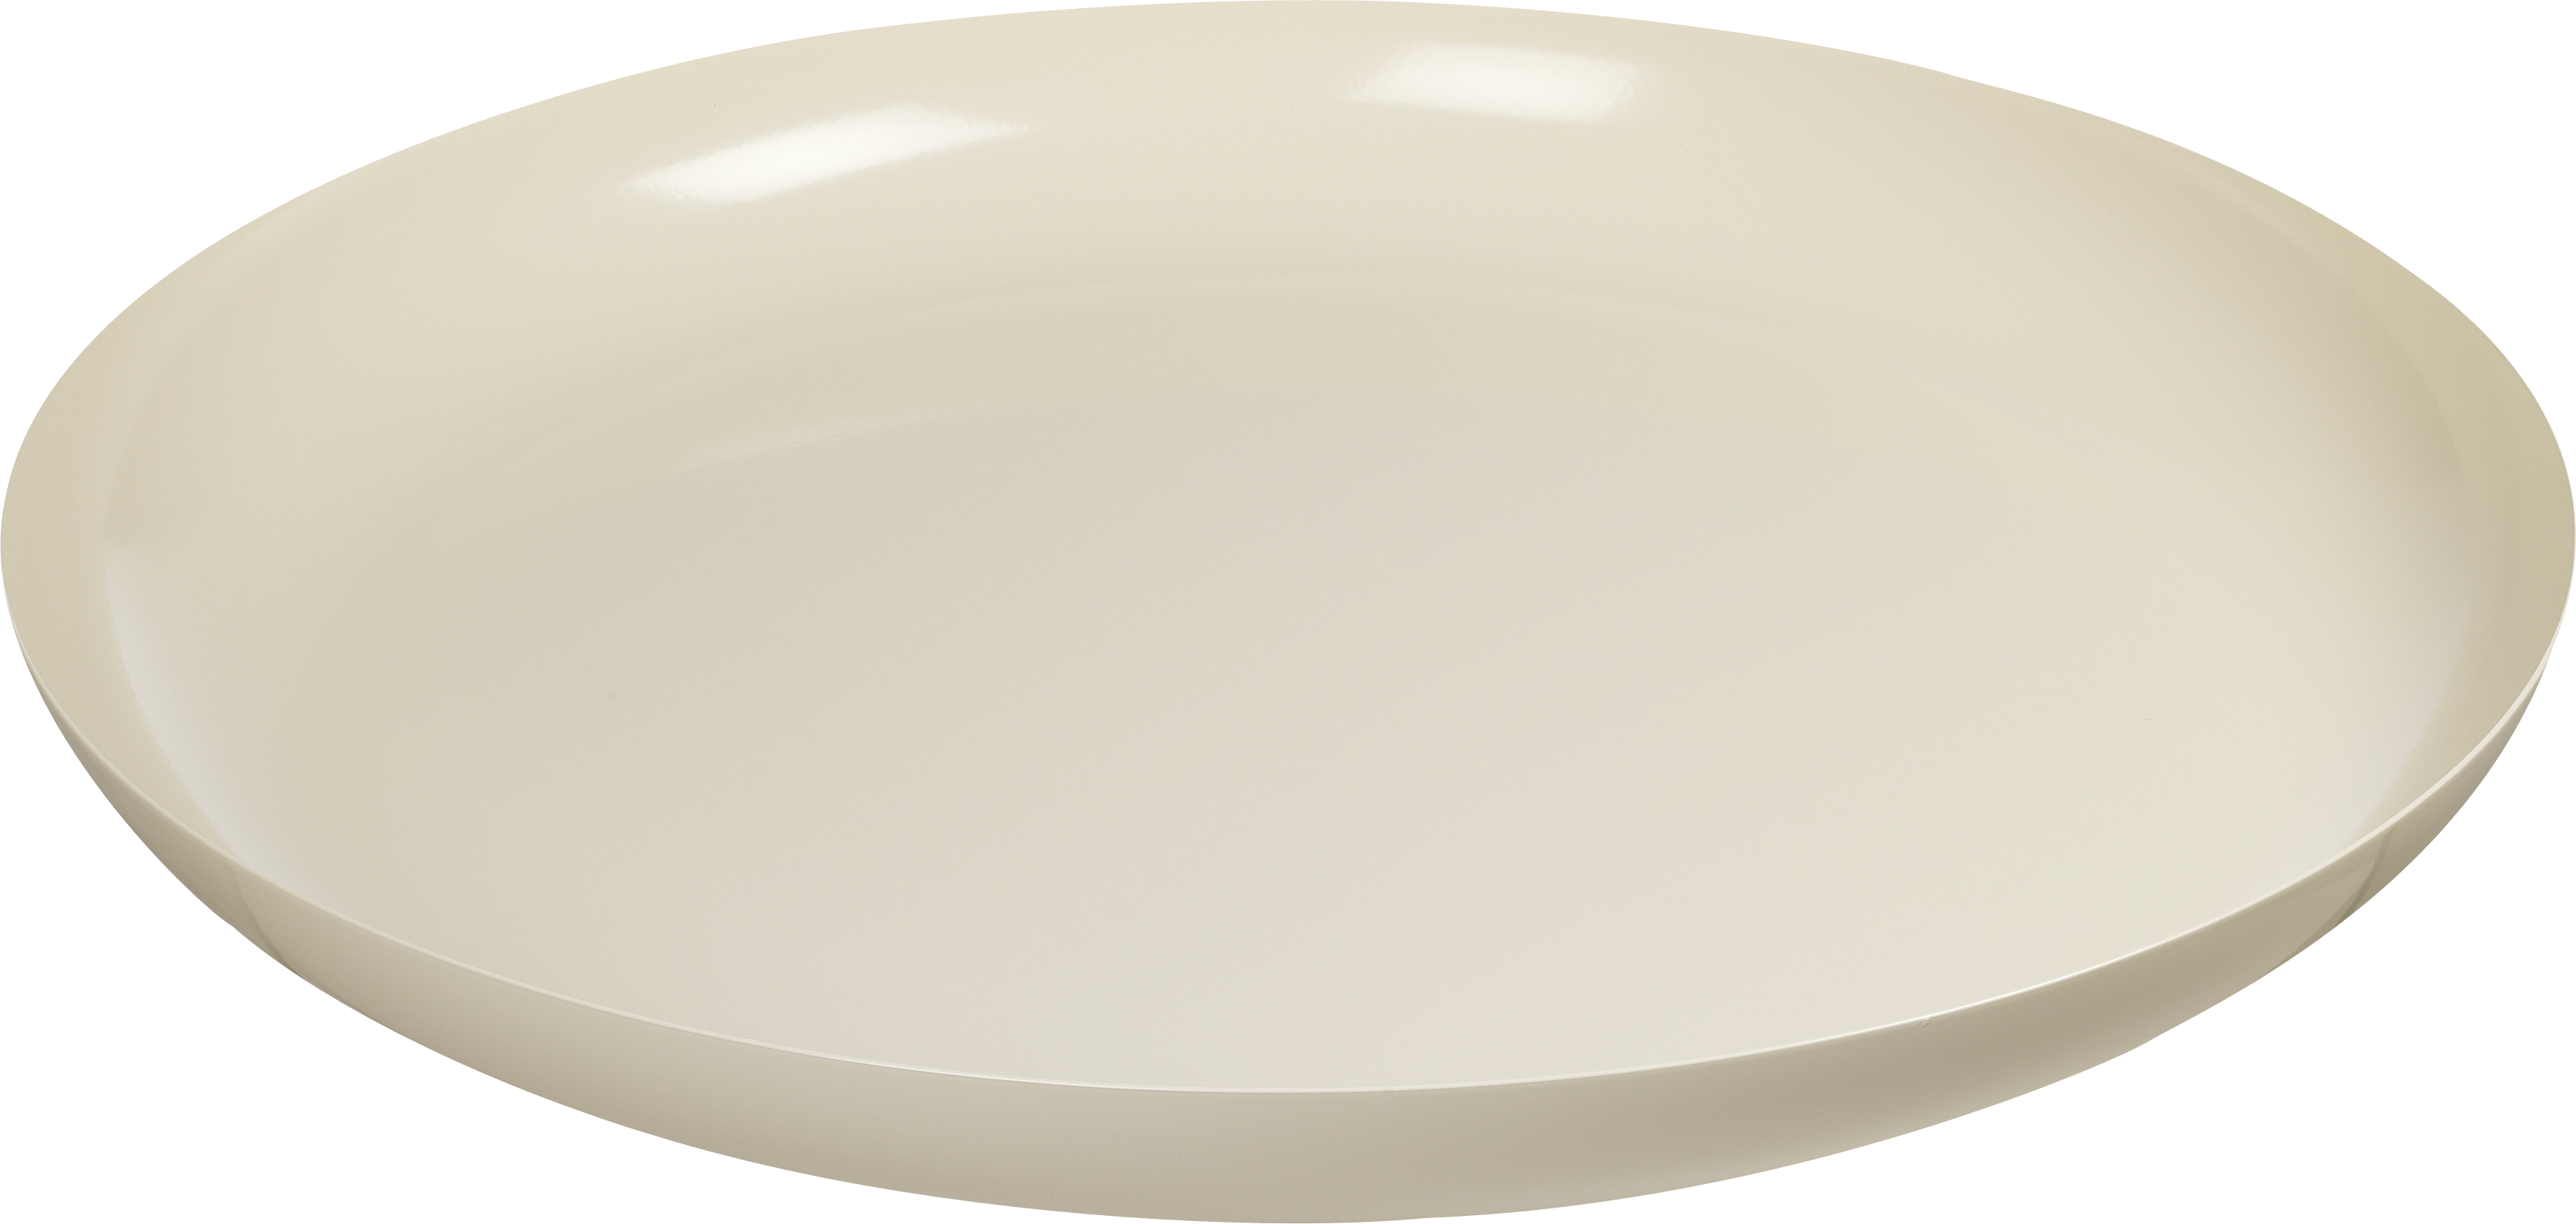 Plate PNG - 3184